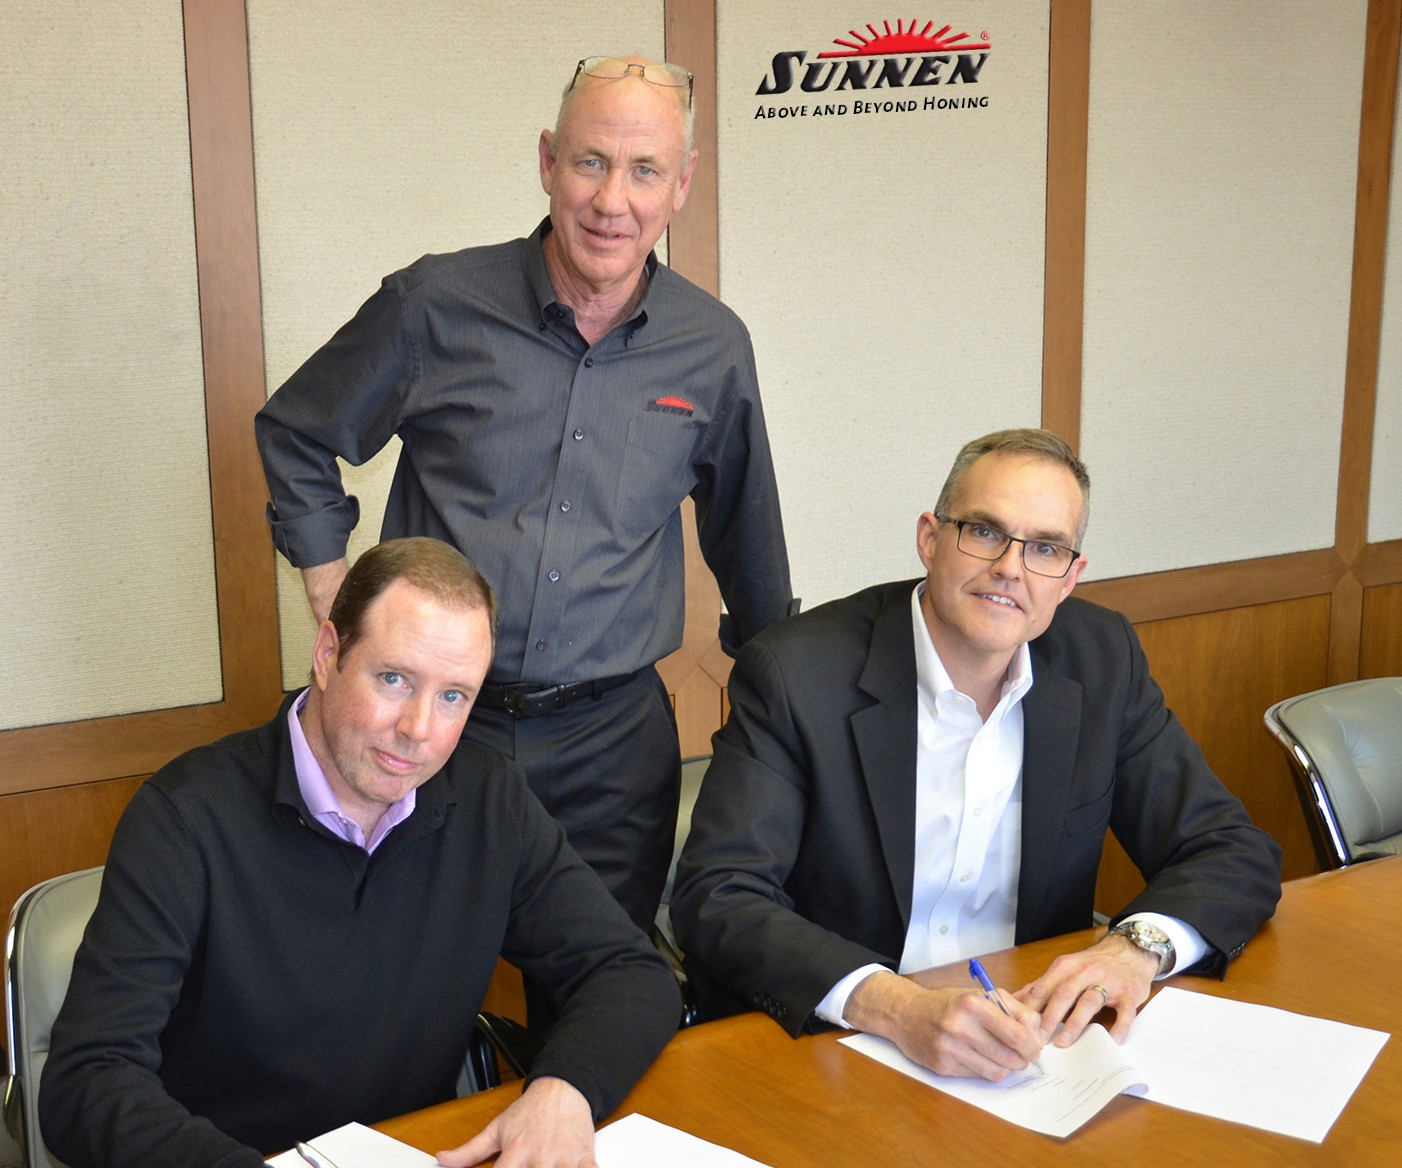 Executives signing papers for acquisition